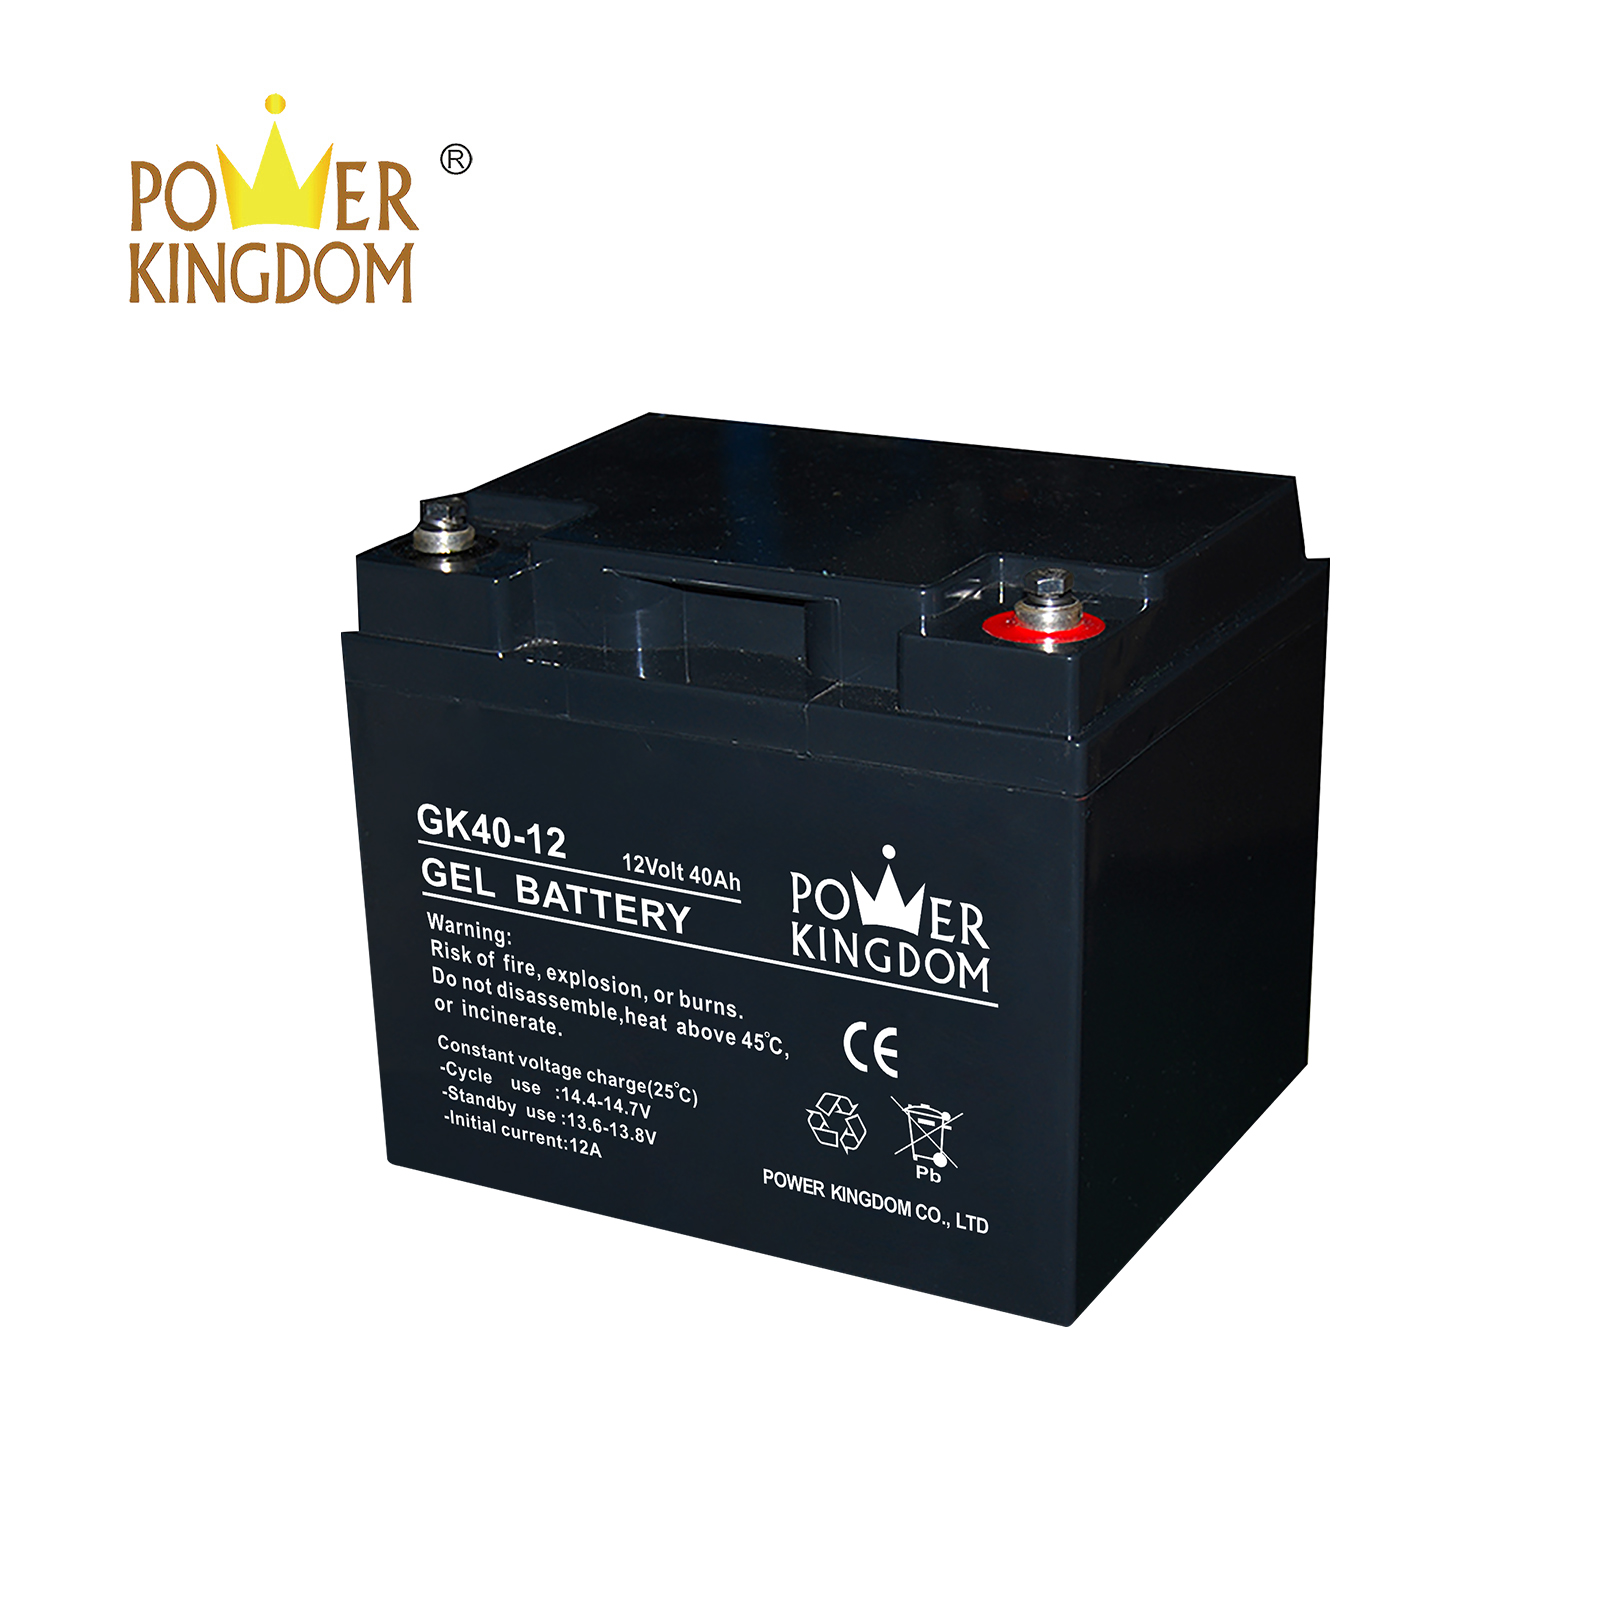 high consistency 12v lead acid battery design medical equipment